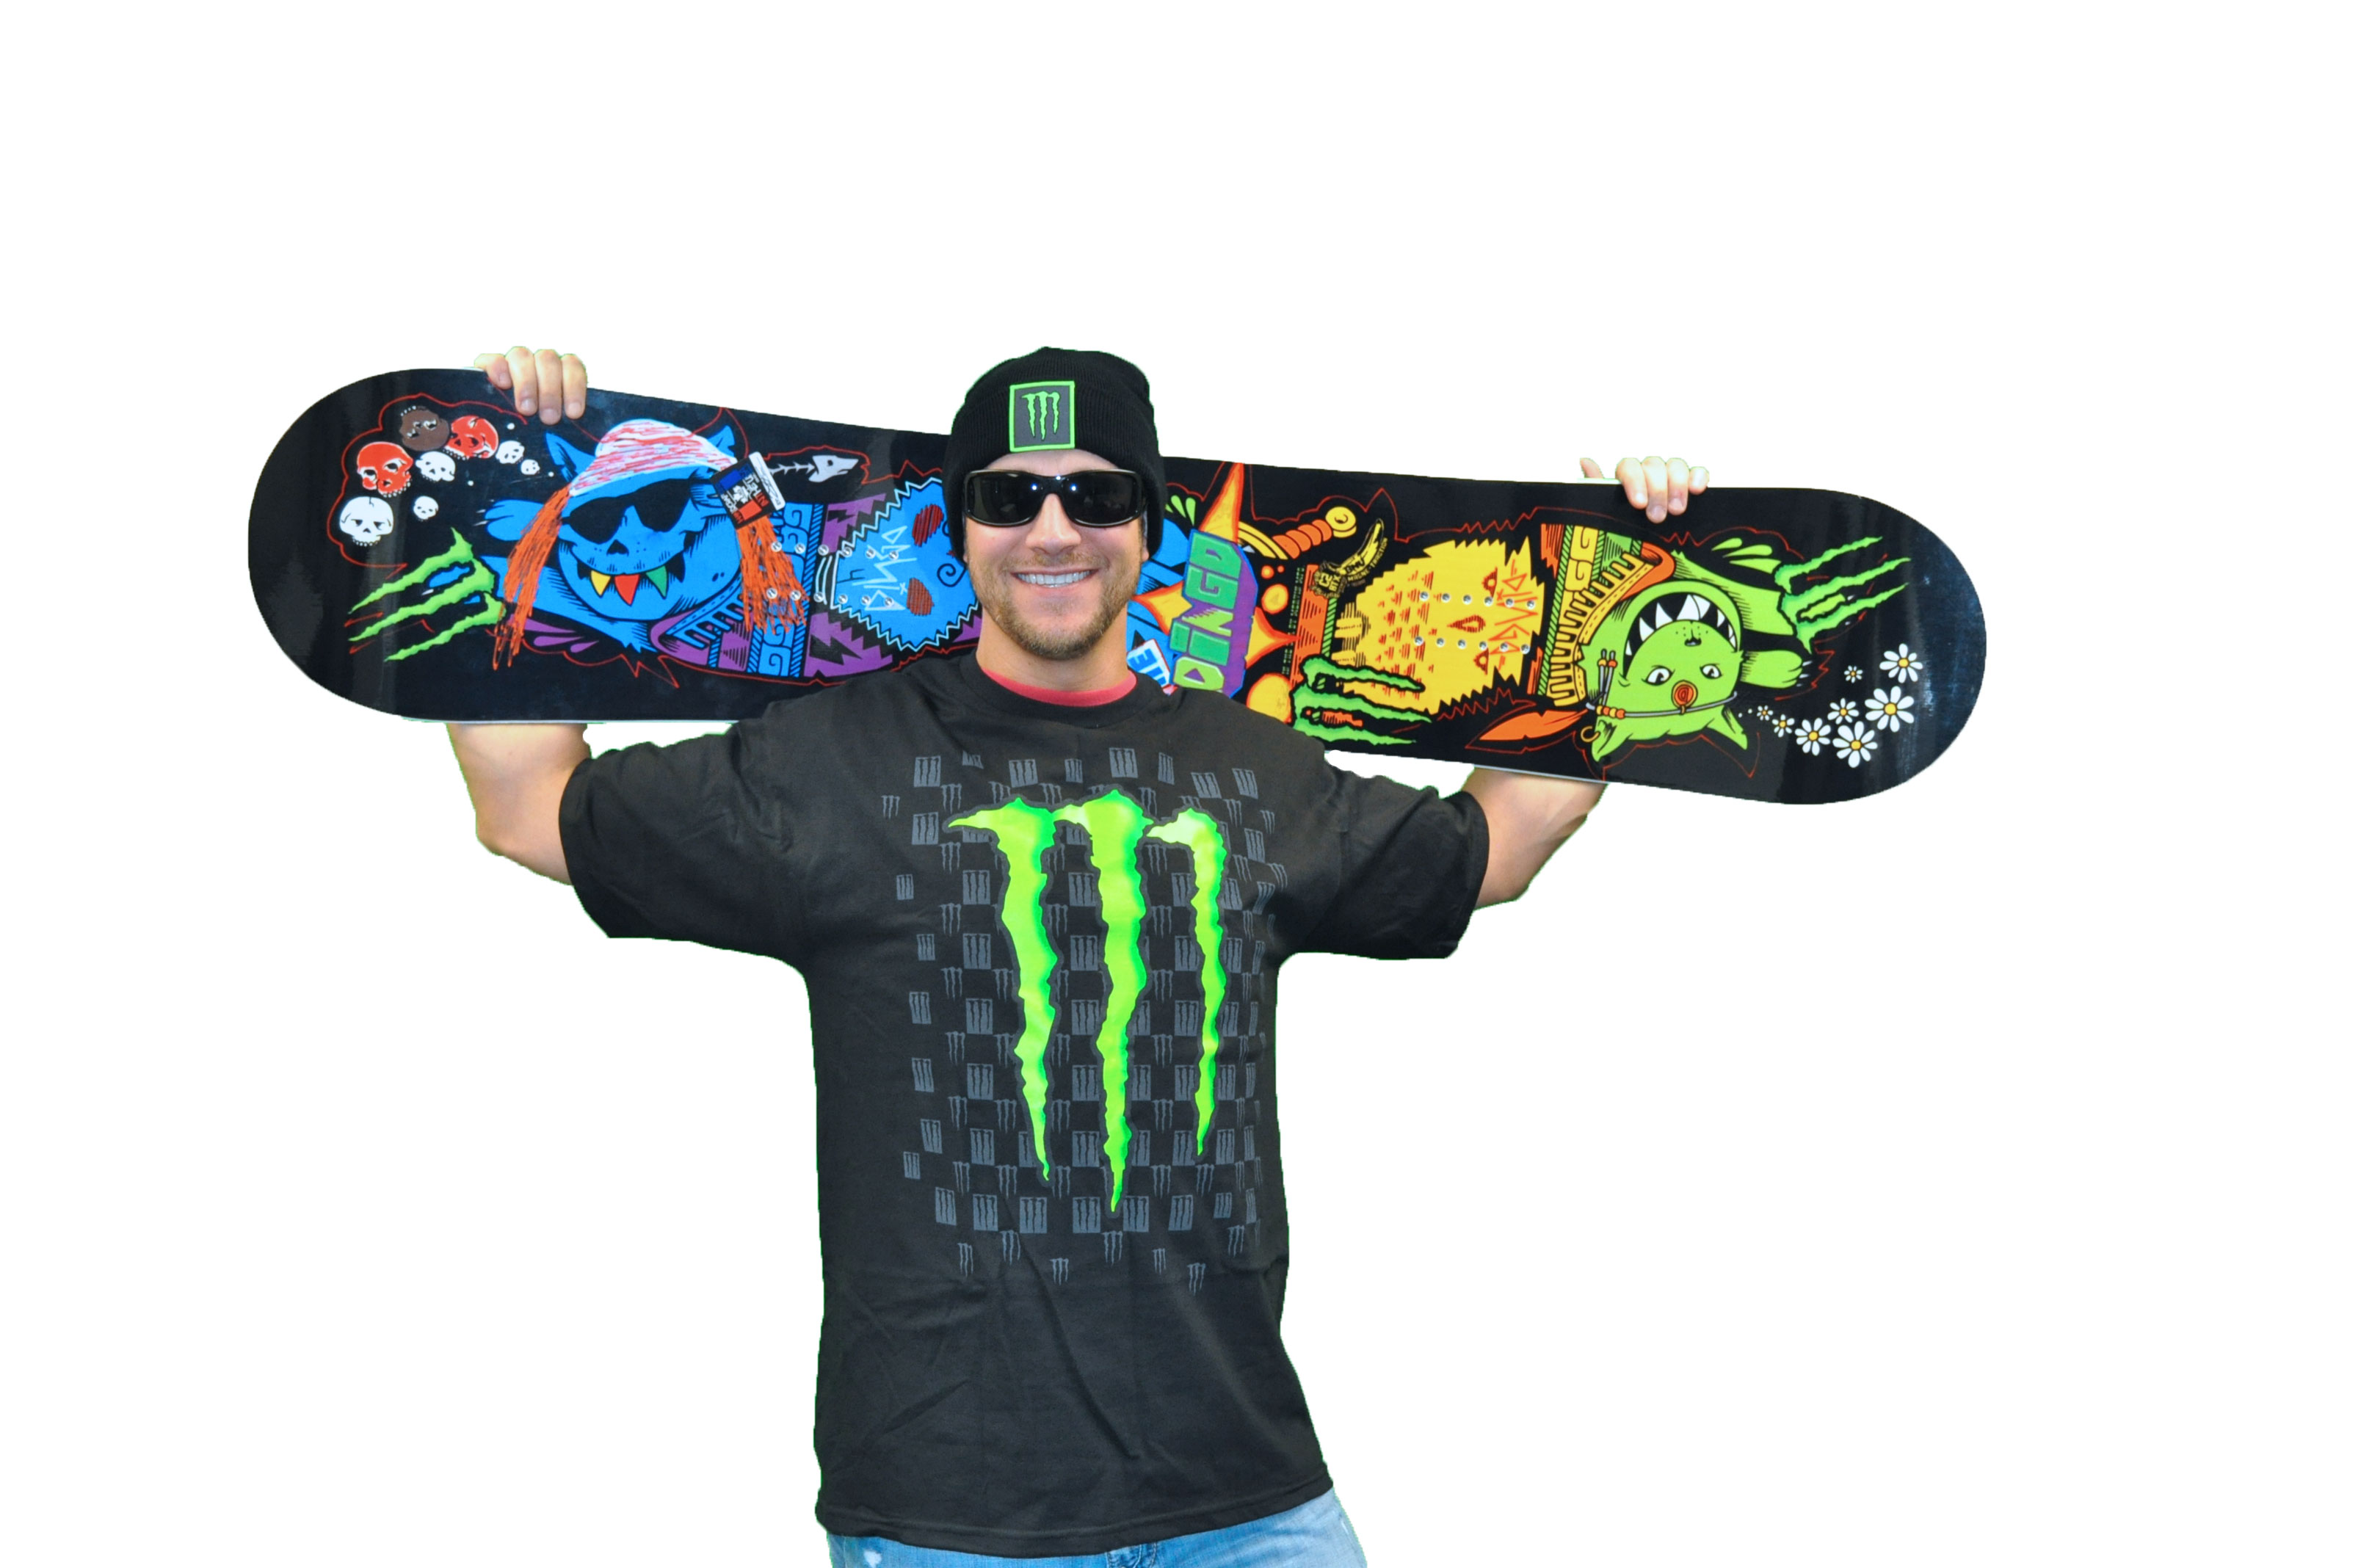 Monster Energy Snowboard